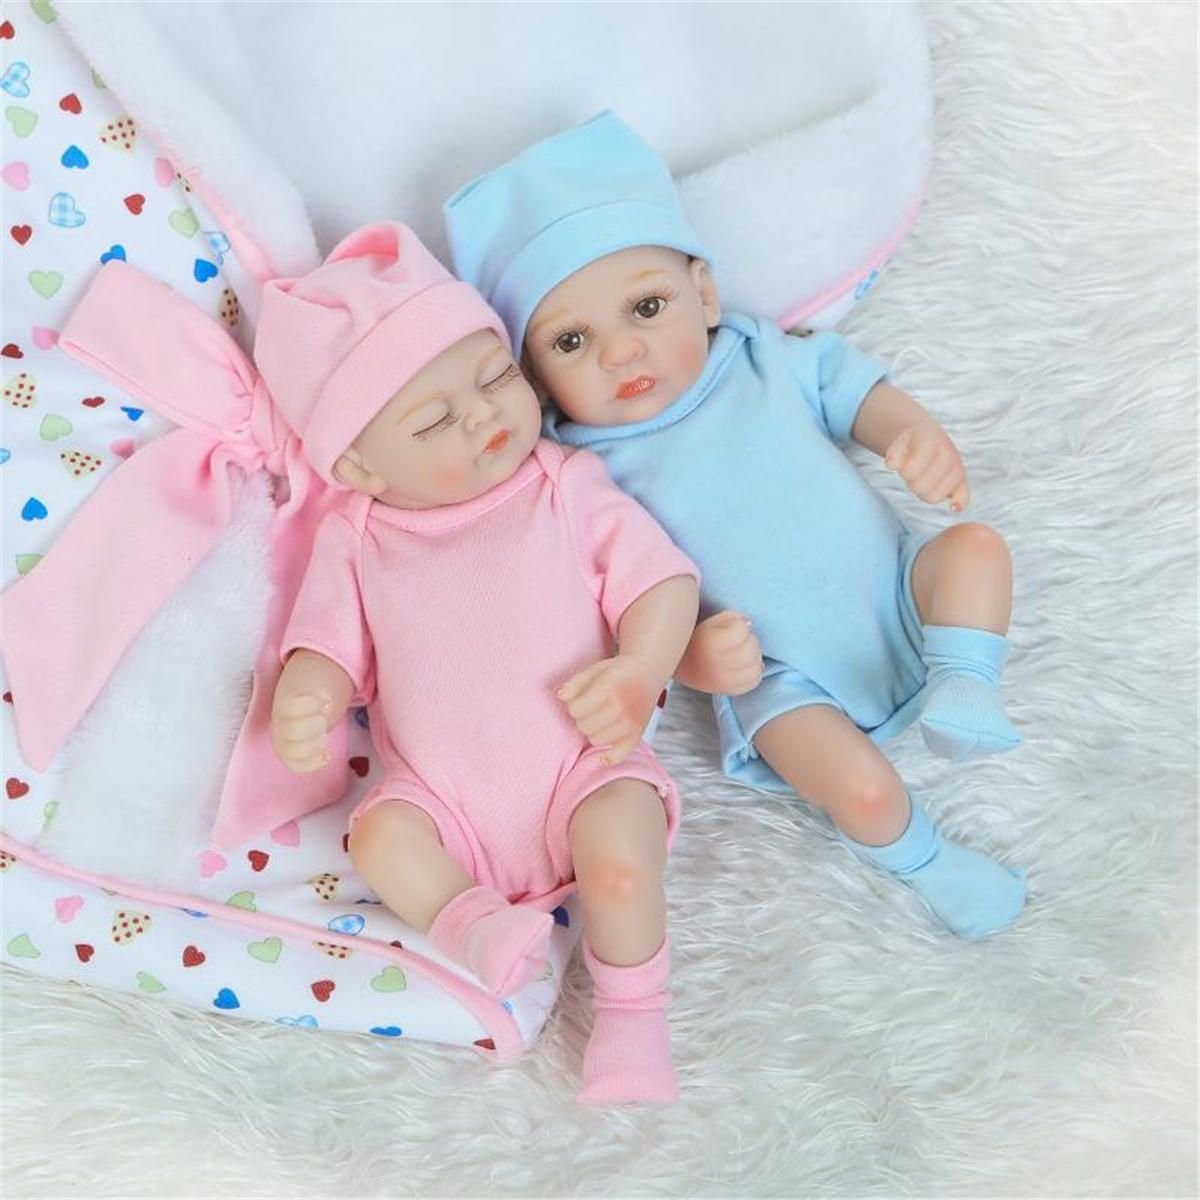 10/'/' Vinyl Silicone Reborn Baby Doll Girl+Boy Handmade Lifelike Dolls Twins US